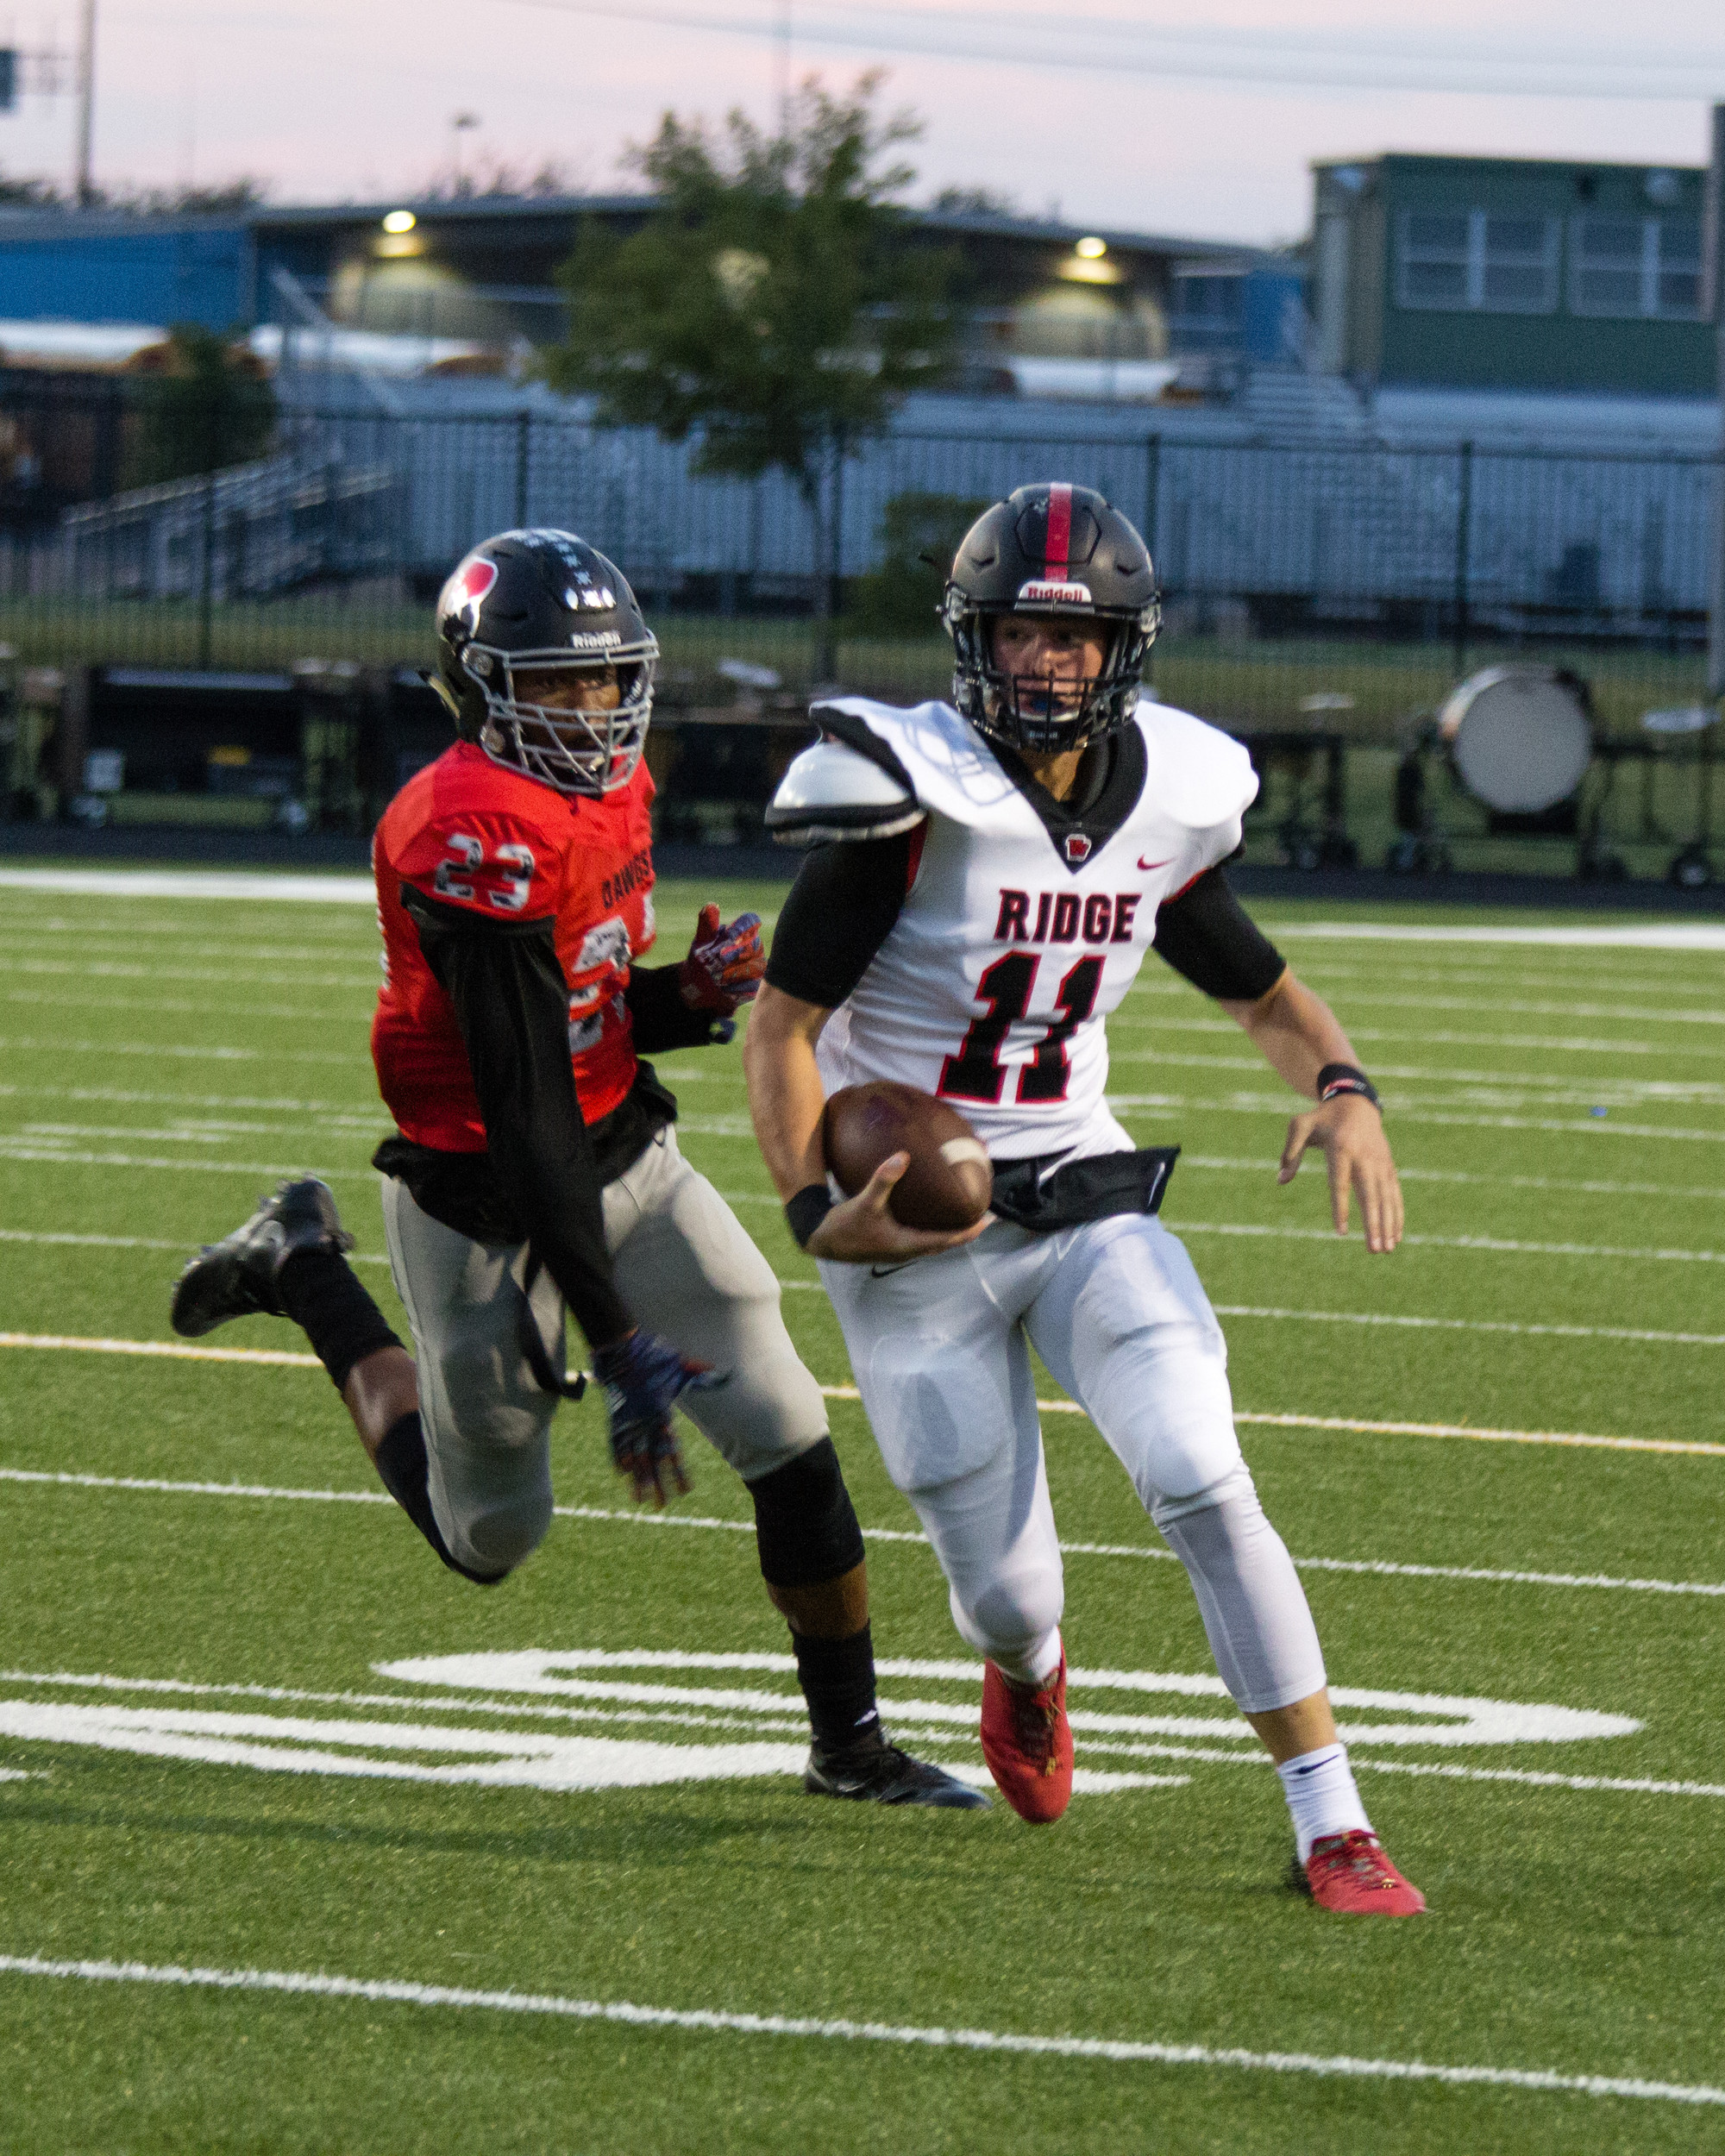 Jacob Taute and Vista Ridge host Westwood Friday night in the final game before district play begins. The Rangers dropped their second game of the season last week against Austin Bowie.